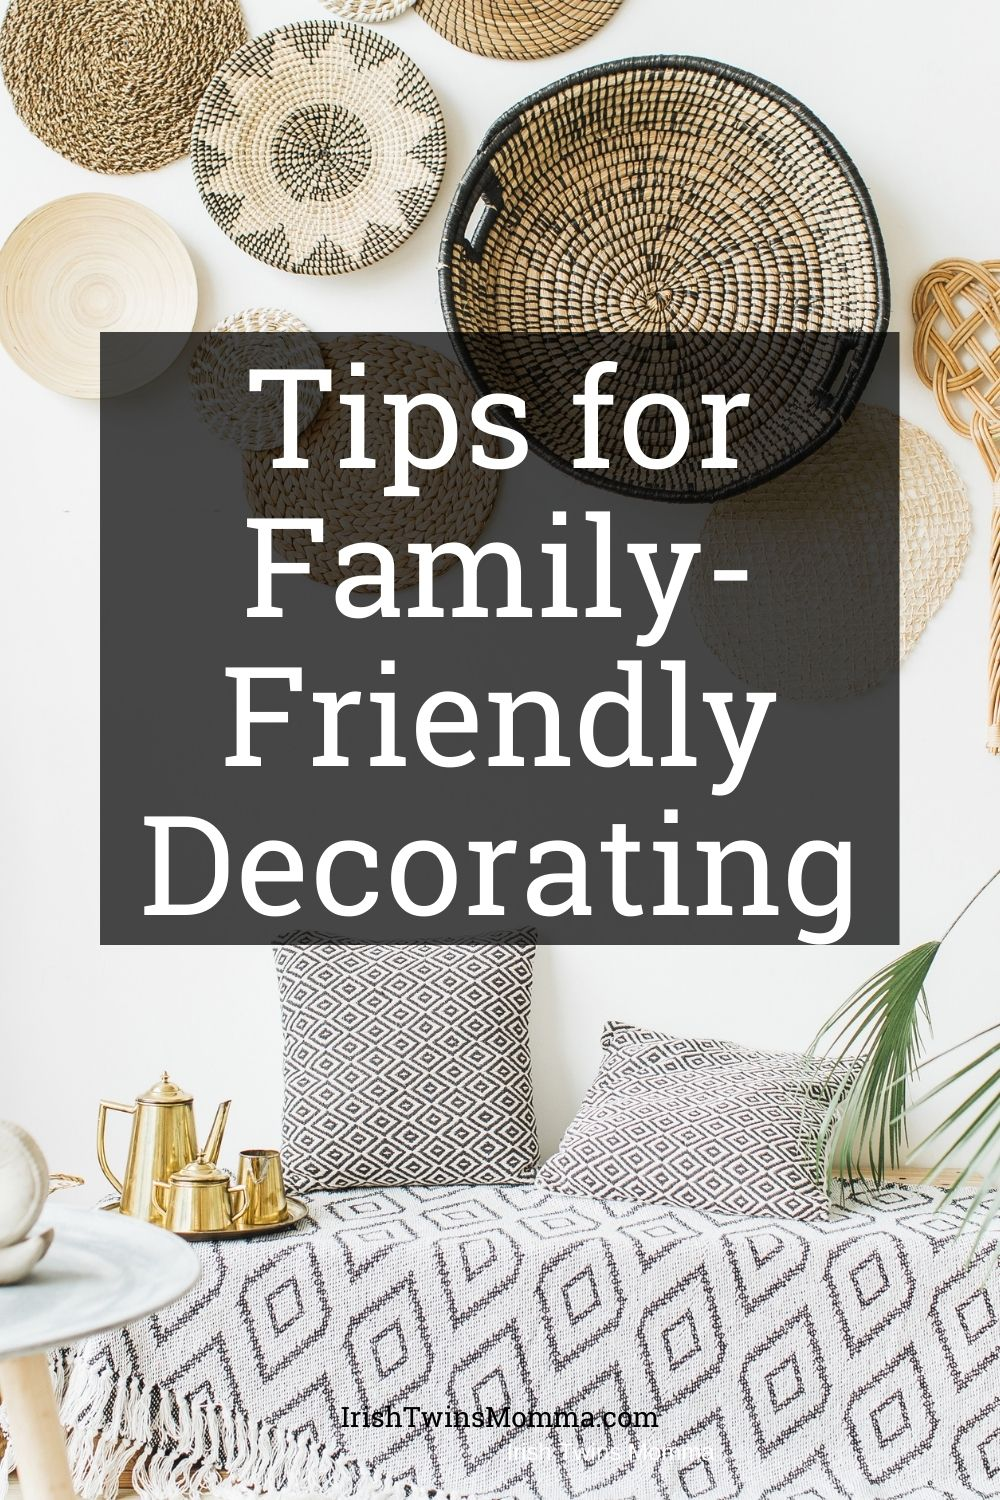 Tips for Family-Friendly Decorating